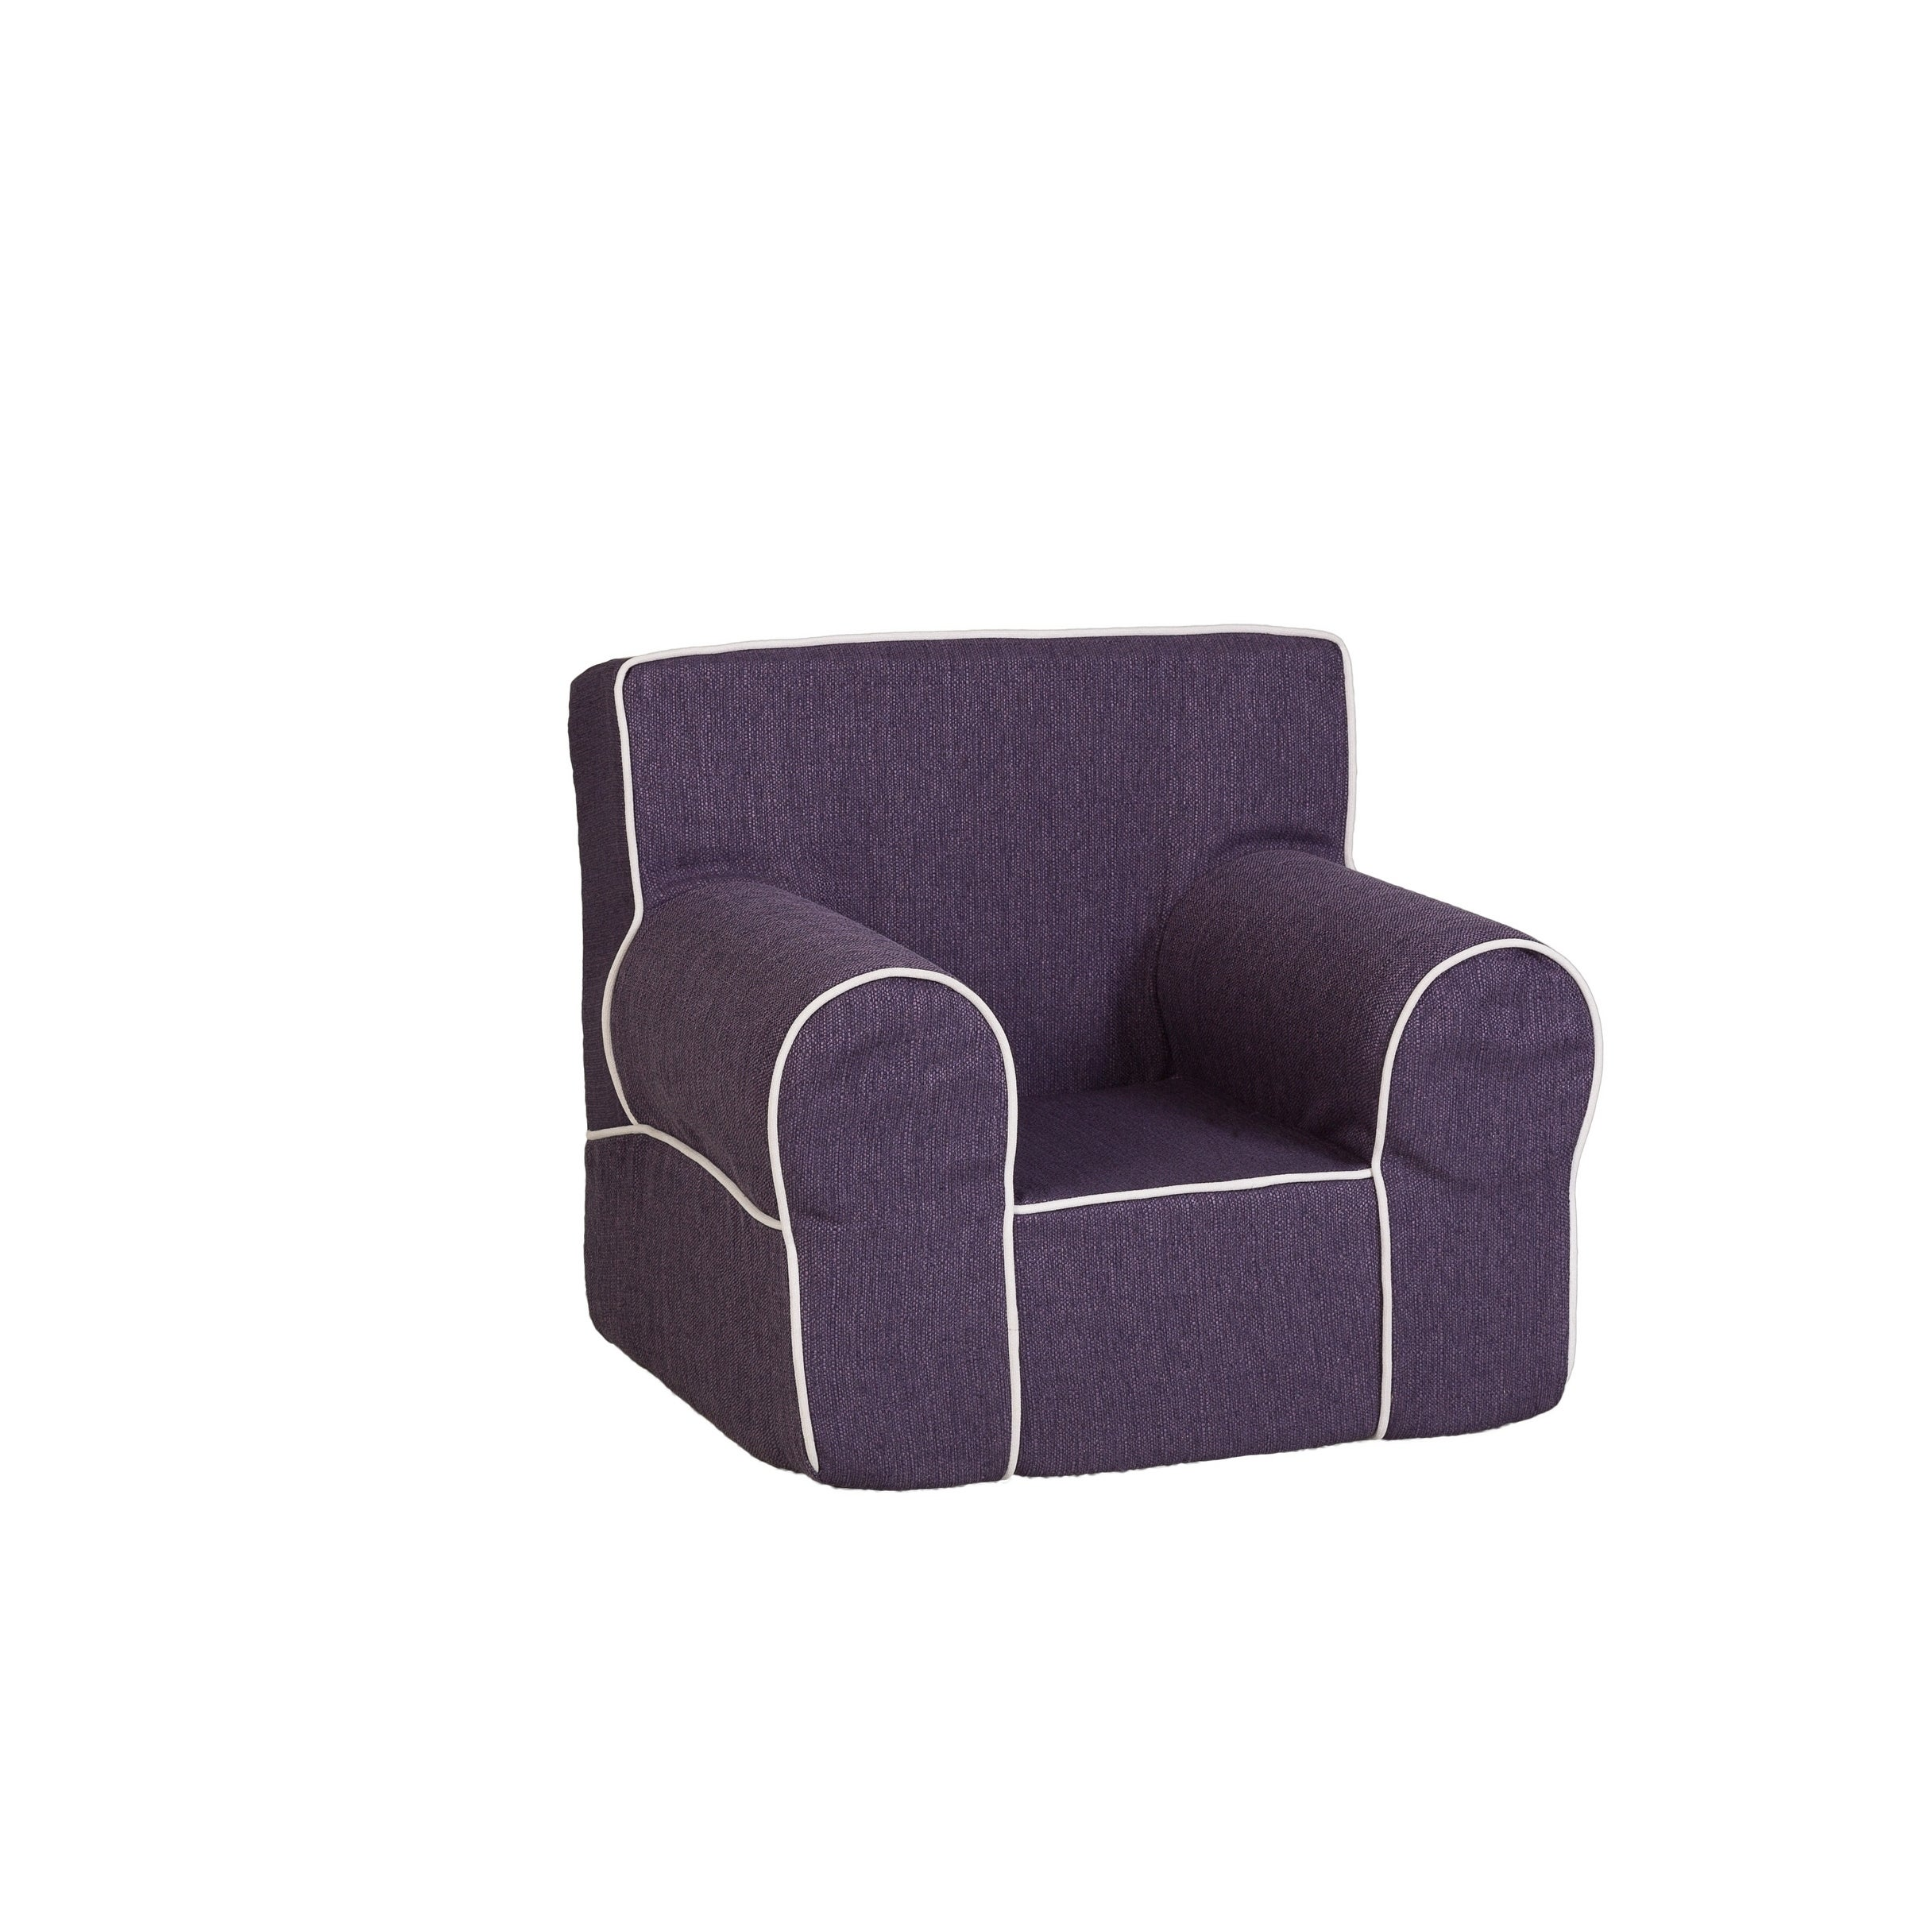 Bon Shop Leffler Home All Mine Personalized Kids Chair In Stallion Purple   On  Sale   Free Shipping Today   Overstock.com   19781682